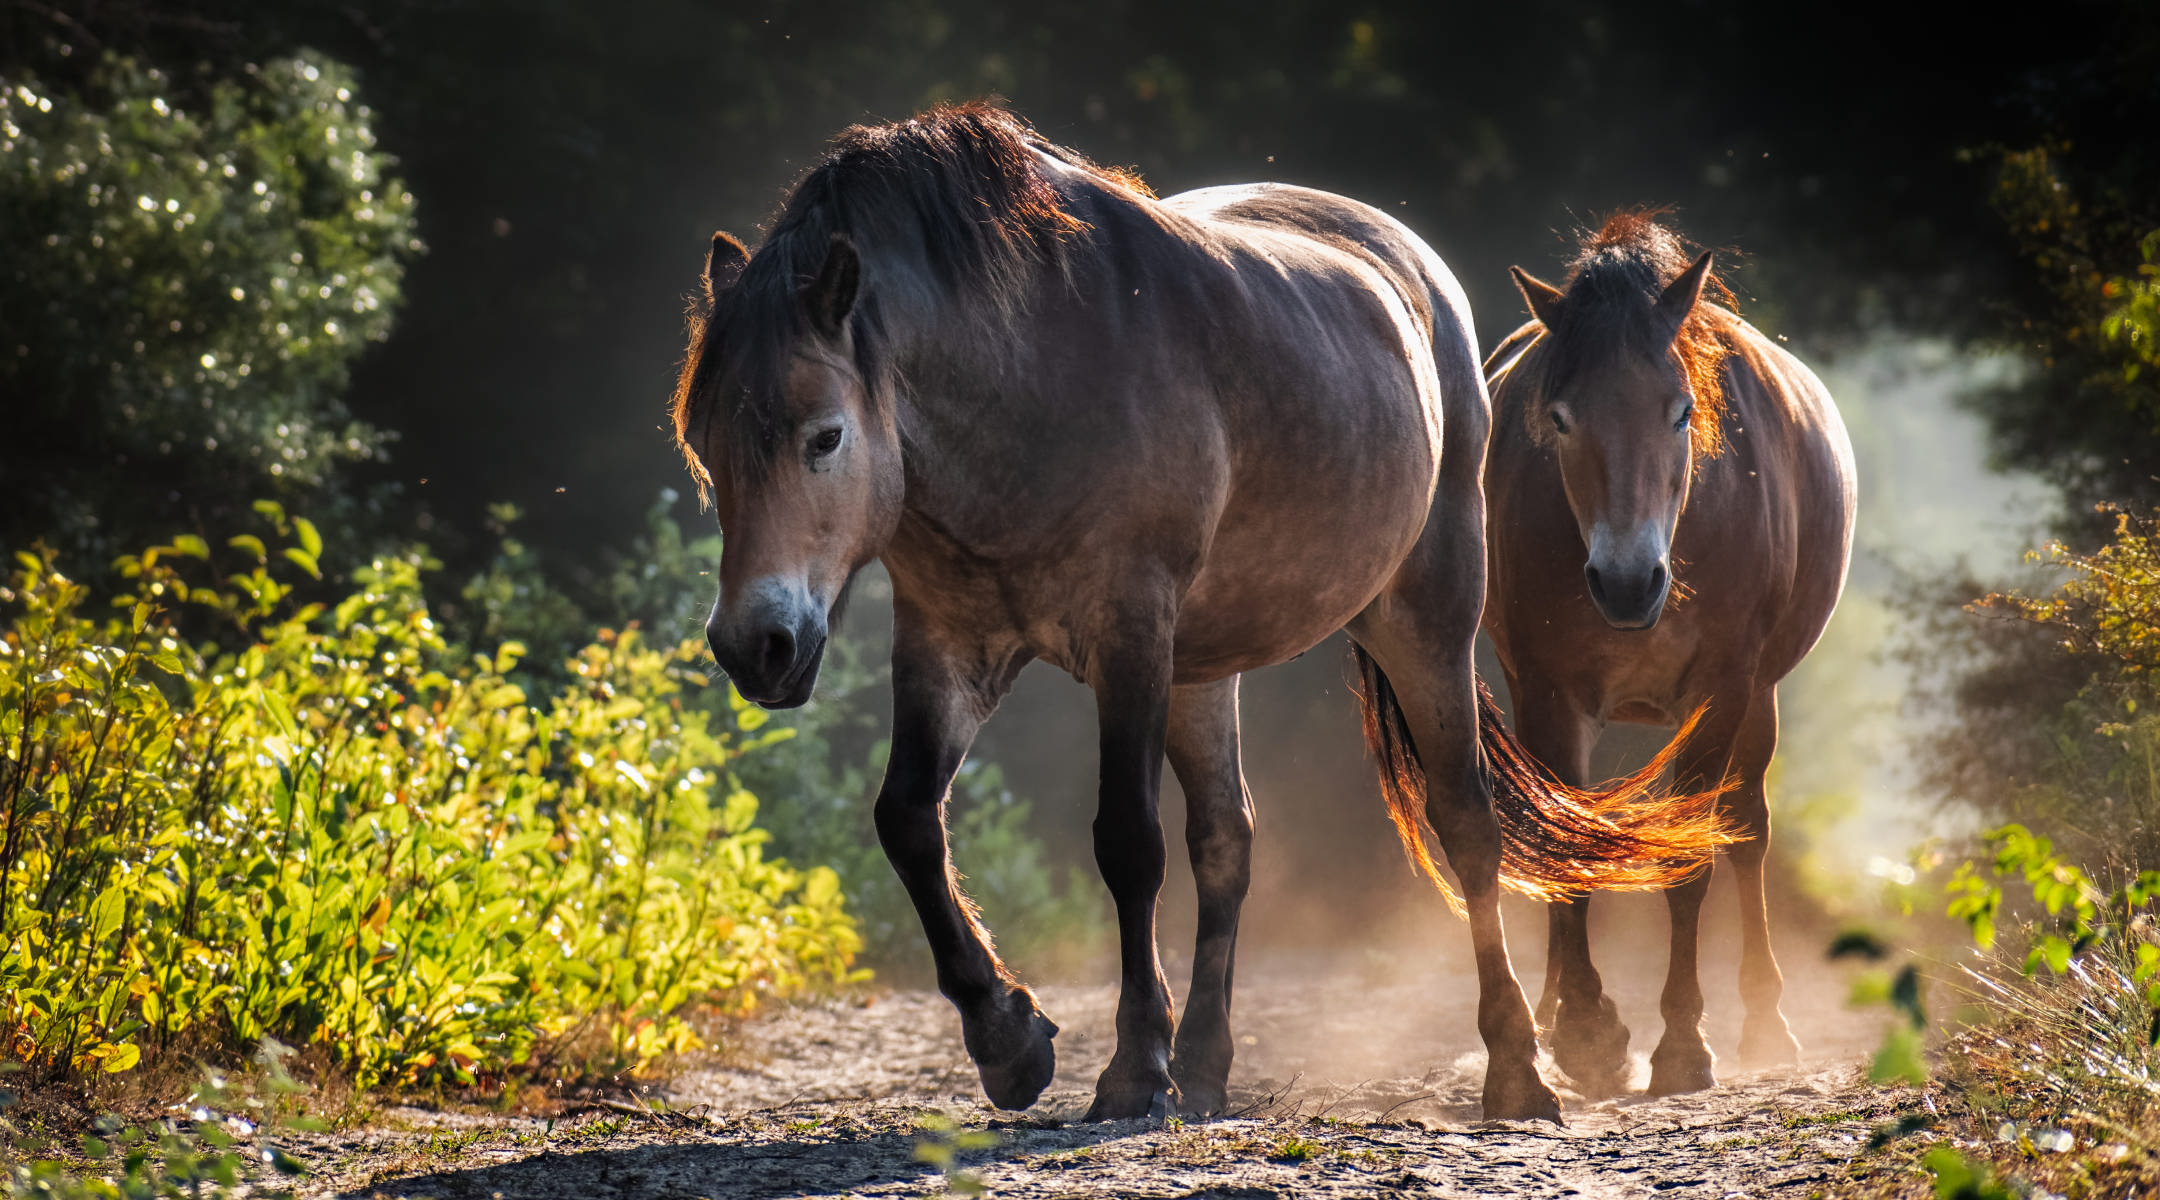 two horses approaching on a sandy forest path in backlight